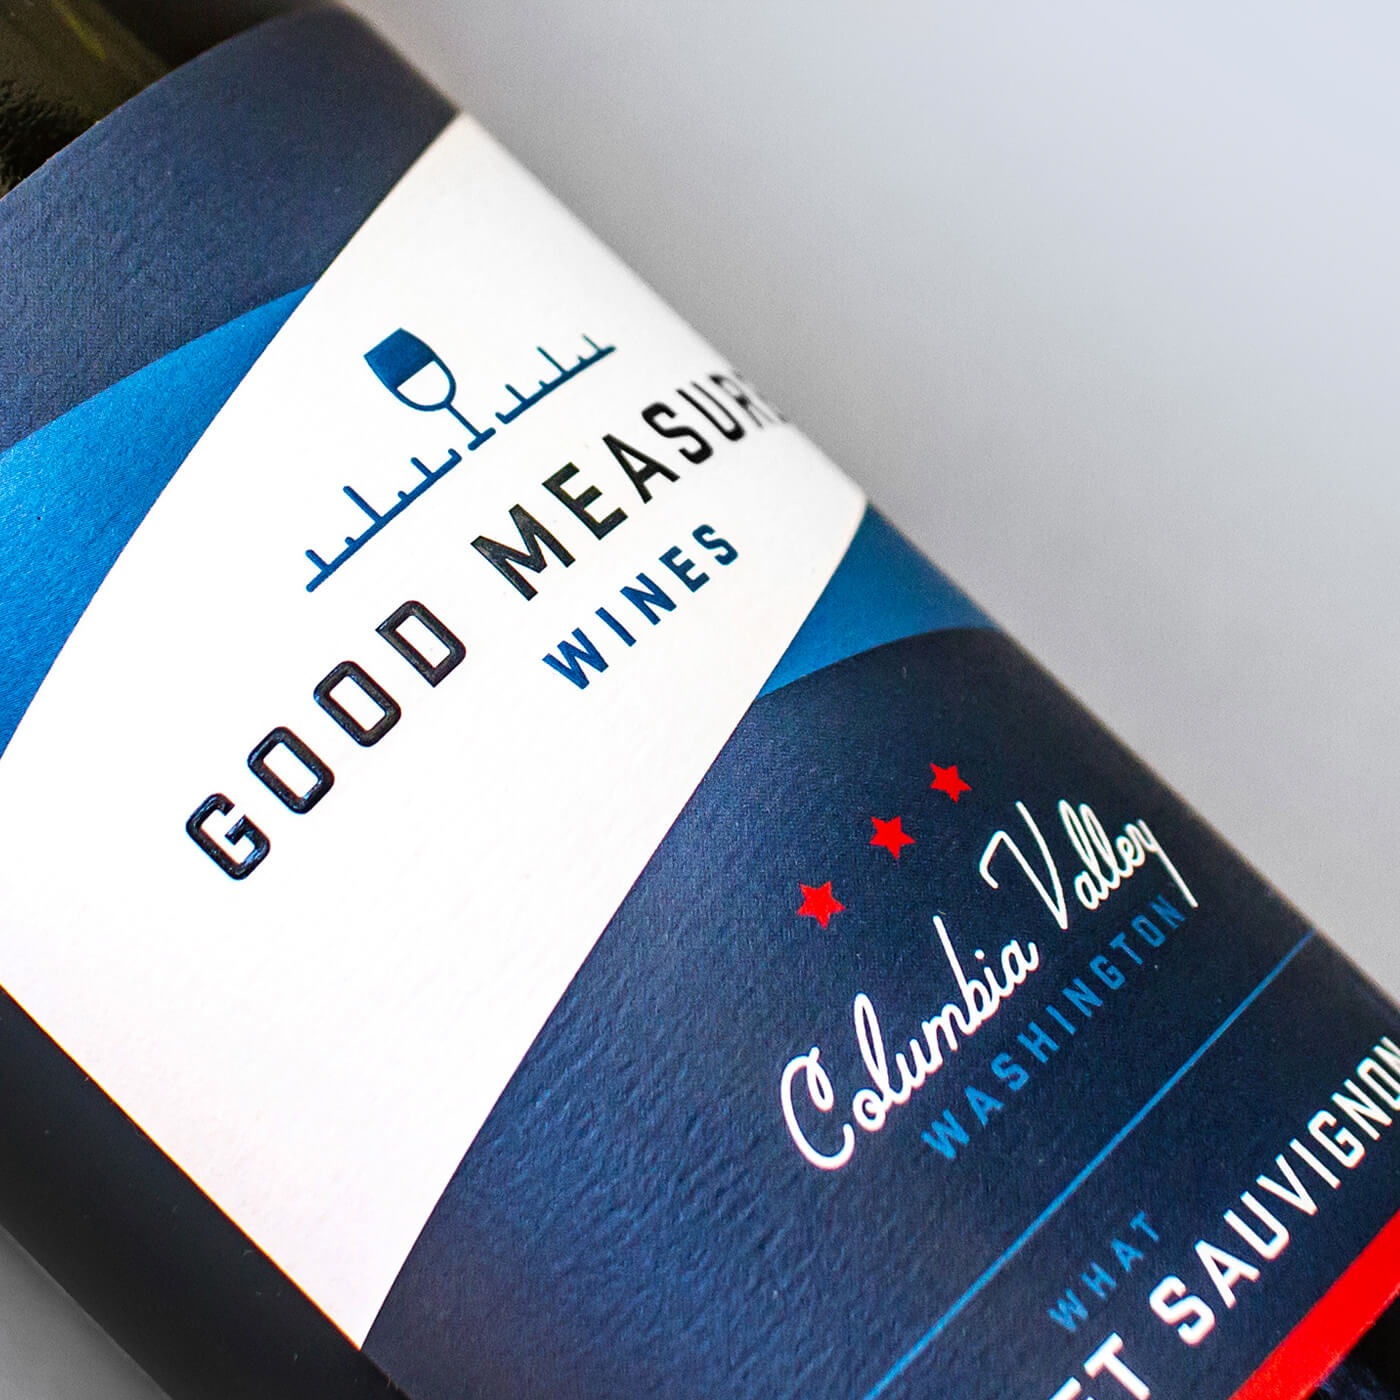 Good Measure Wines - A casual, accessible sister brand to Square, Plumb & Level that offers a slightly lower price point while retaining high quality taste to discernible palates.BrandingView Project →